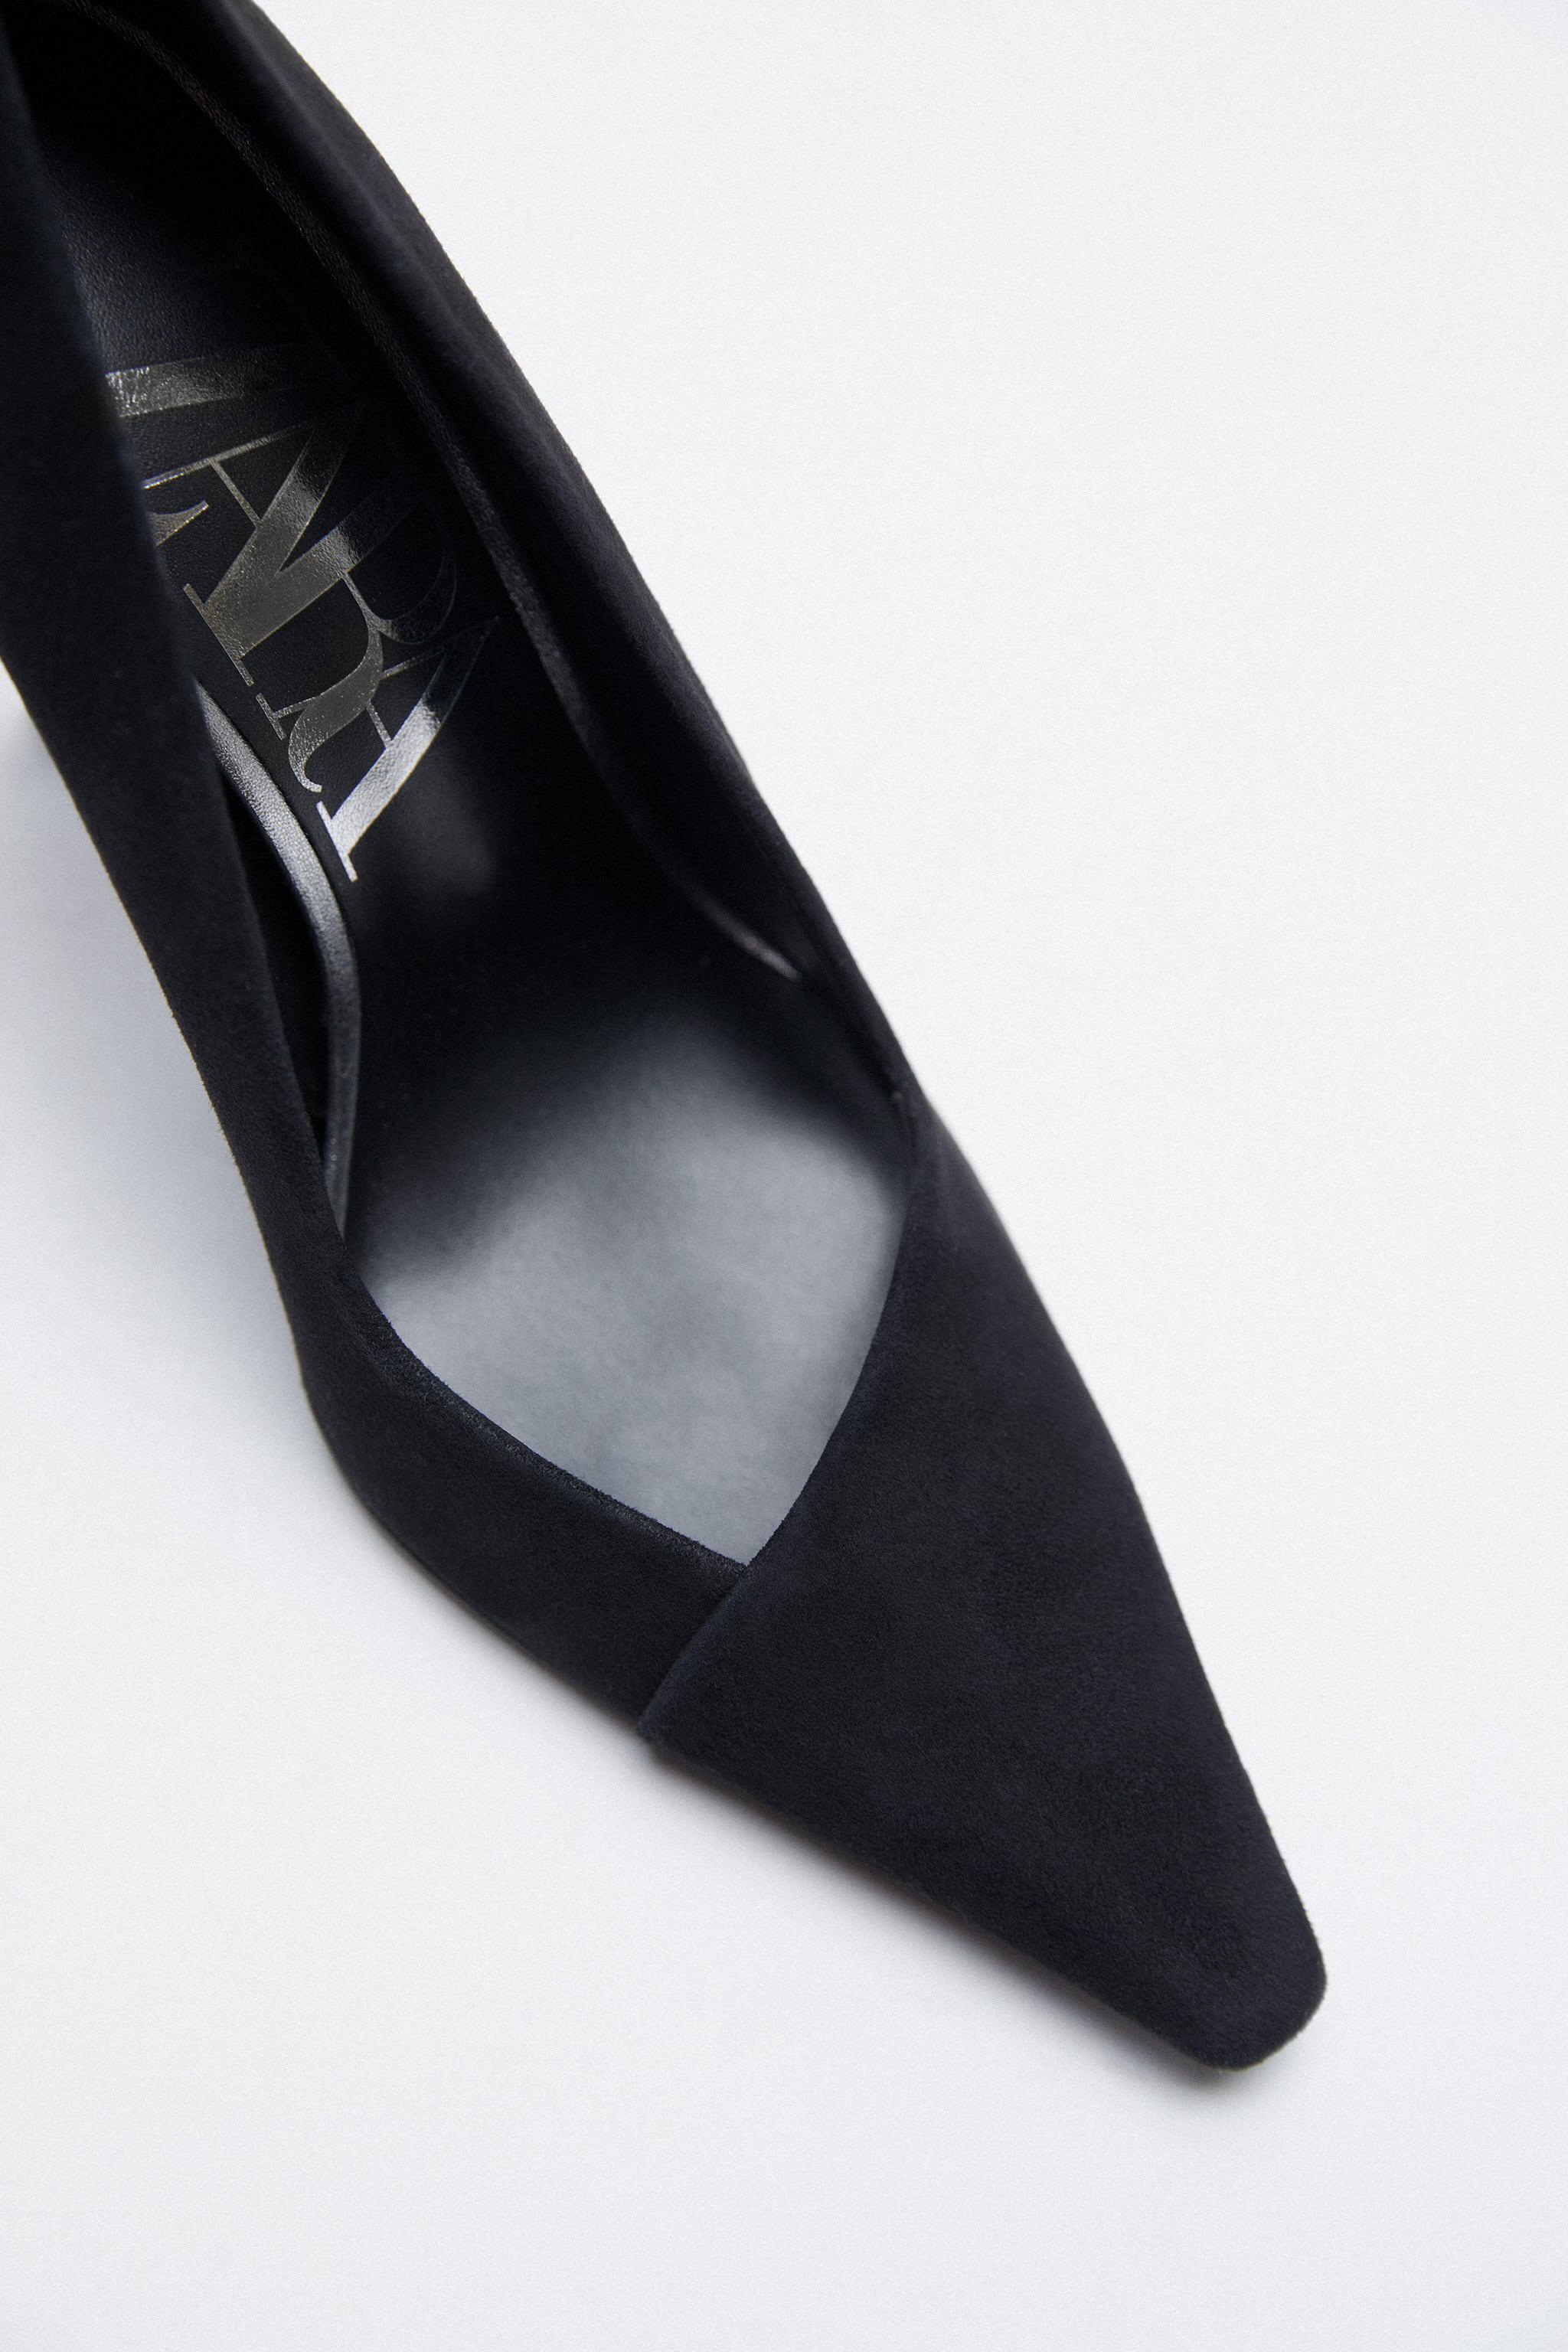 FAUX SUEDE LEATHER HEELS 4